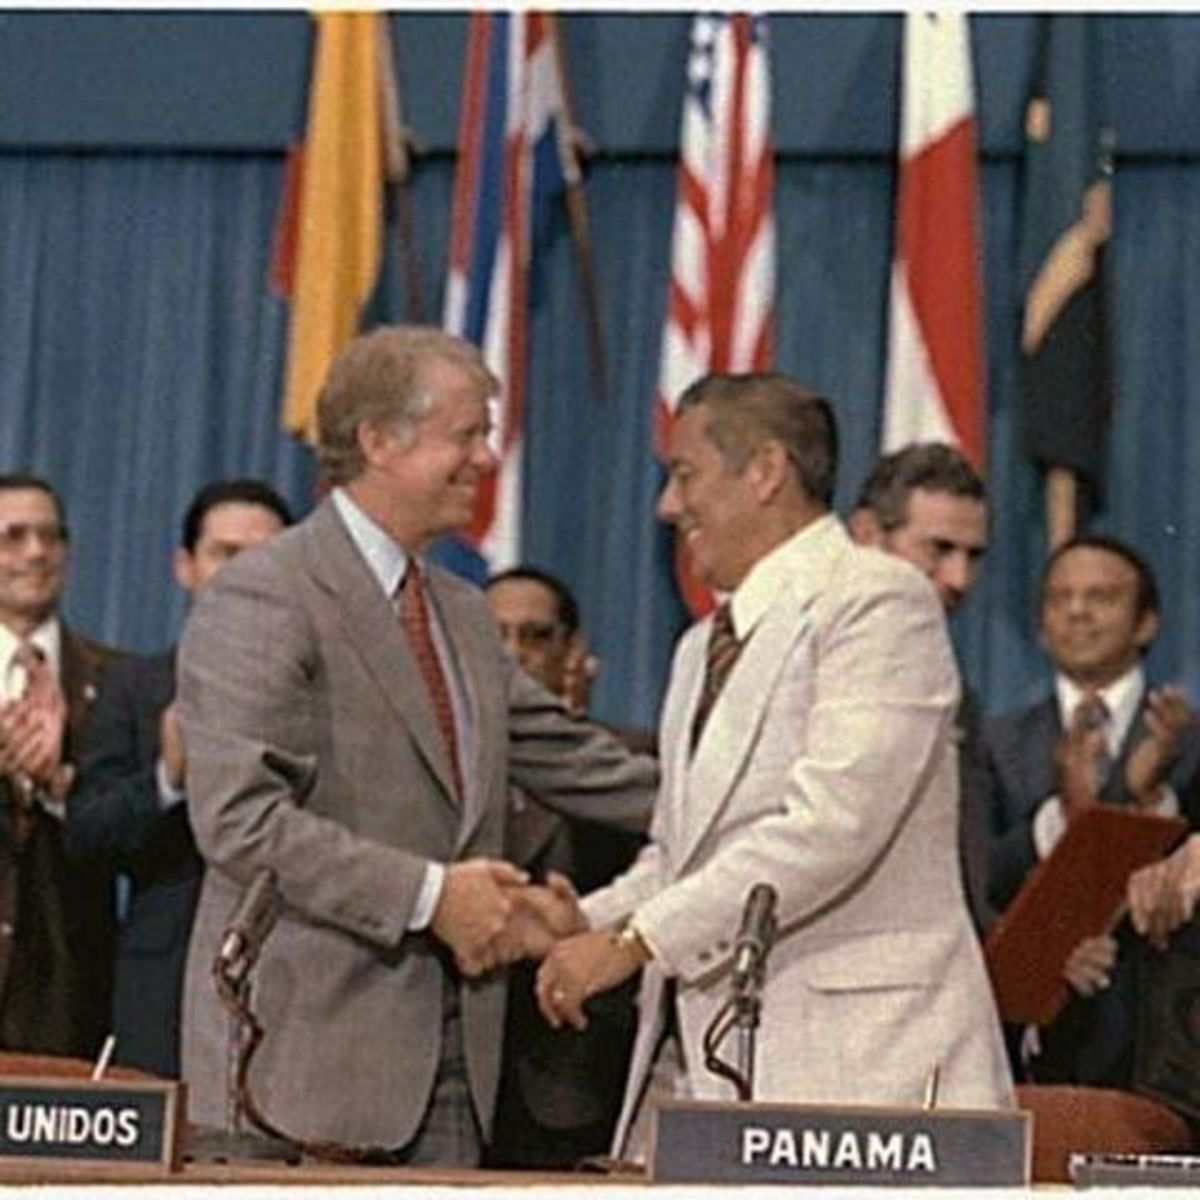 GEN Torrijos and Pres. Carter after signing the new Panama Canal Treaty